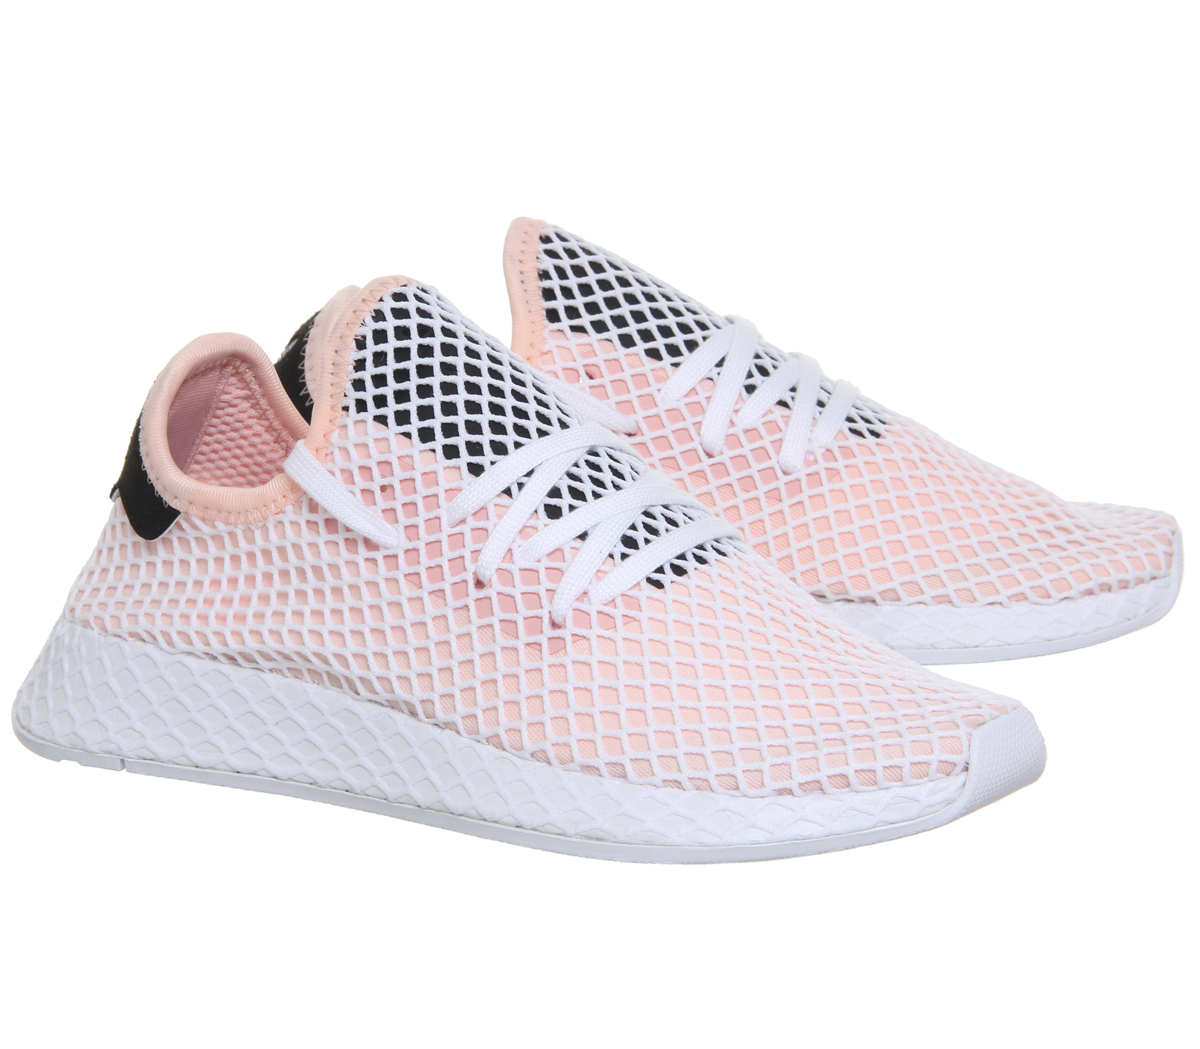 230ca2bcc Mens Adidas Deerupt Trainers Pink White Core Black Trainers Shoes